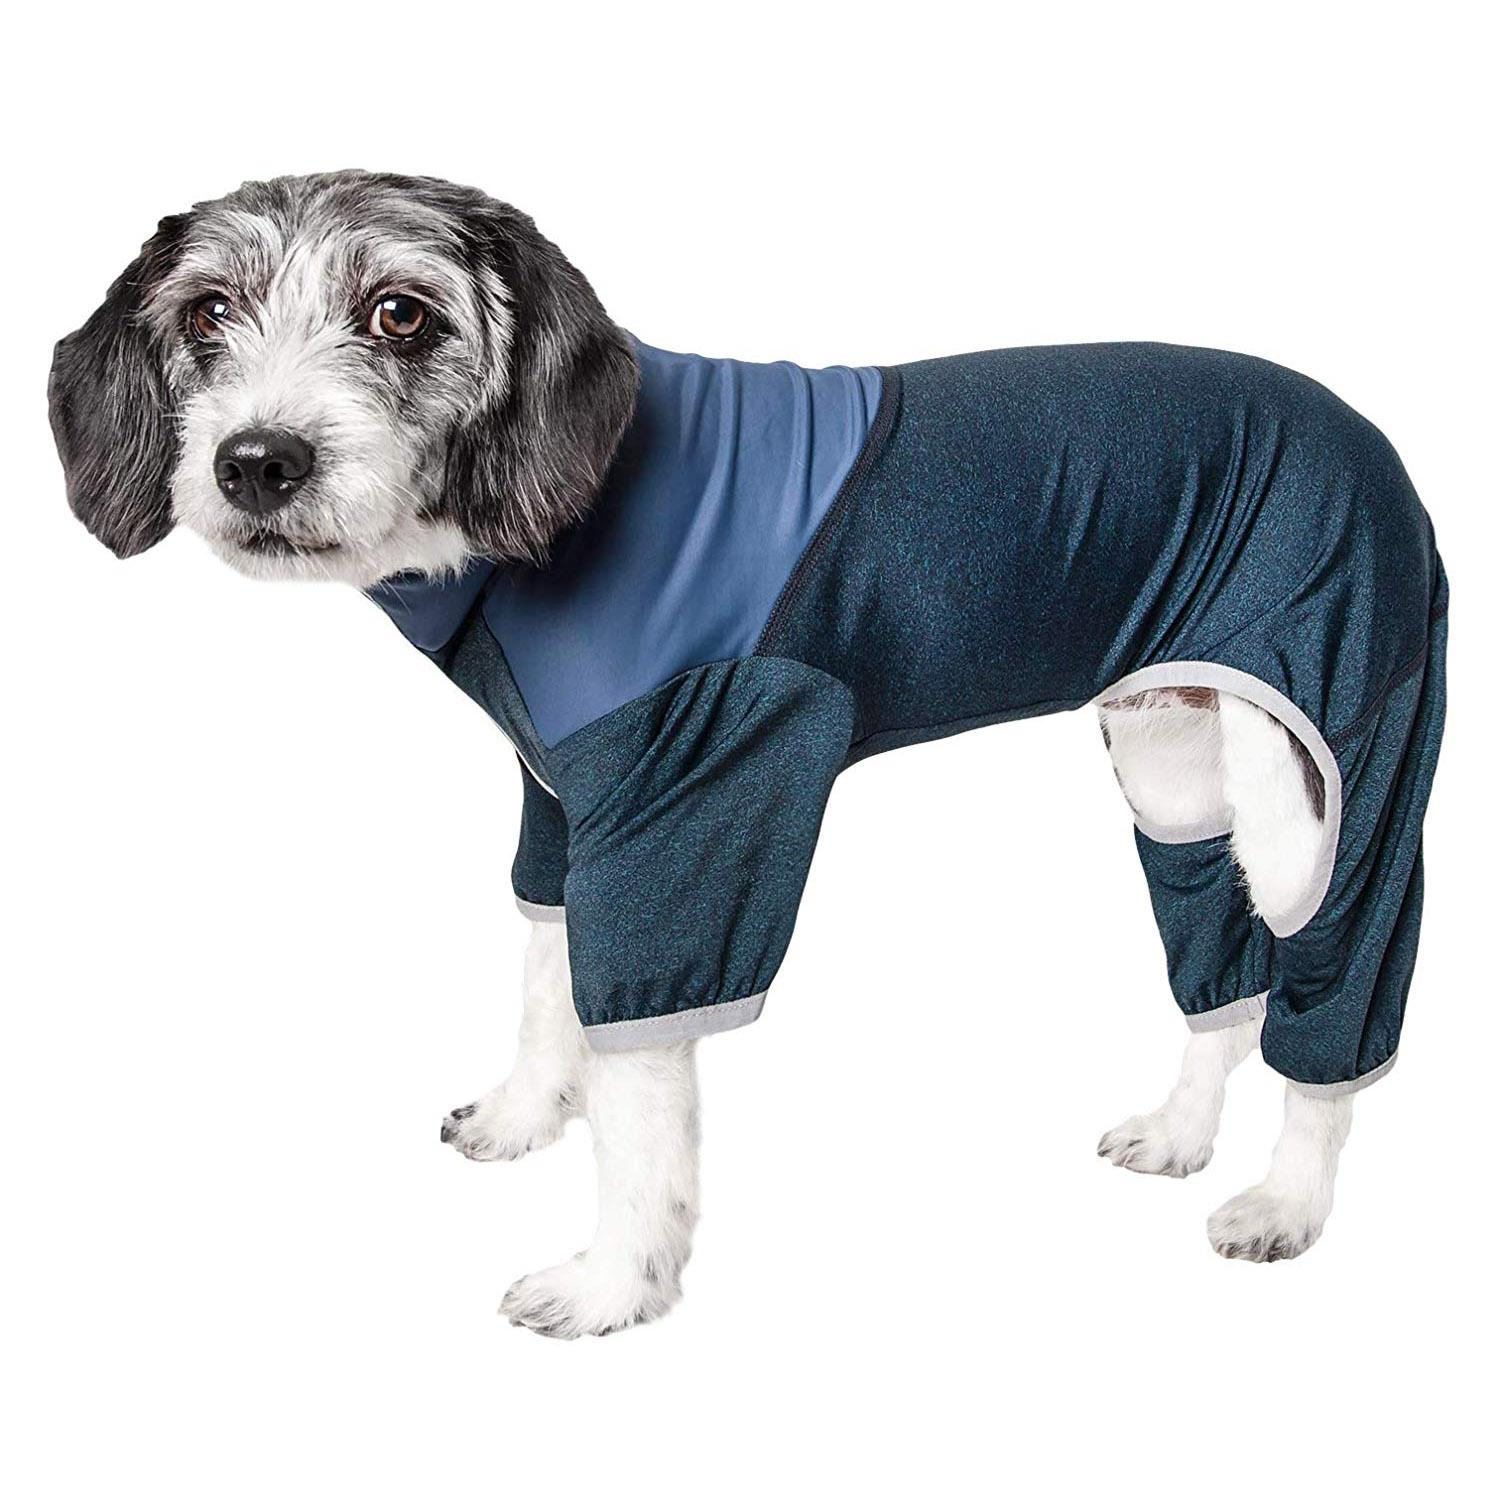 Pet Life ACTIVE 'Embarker' Performance Full-Body Dog Warm Up Suit - Teal and Blue